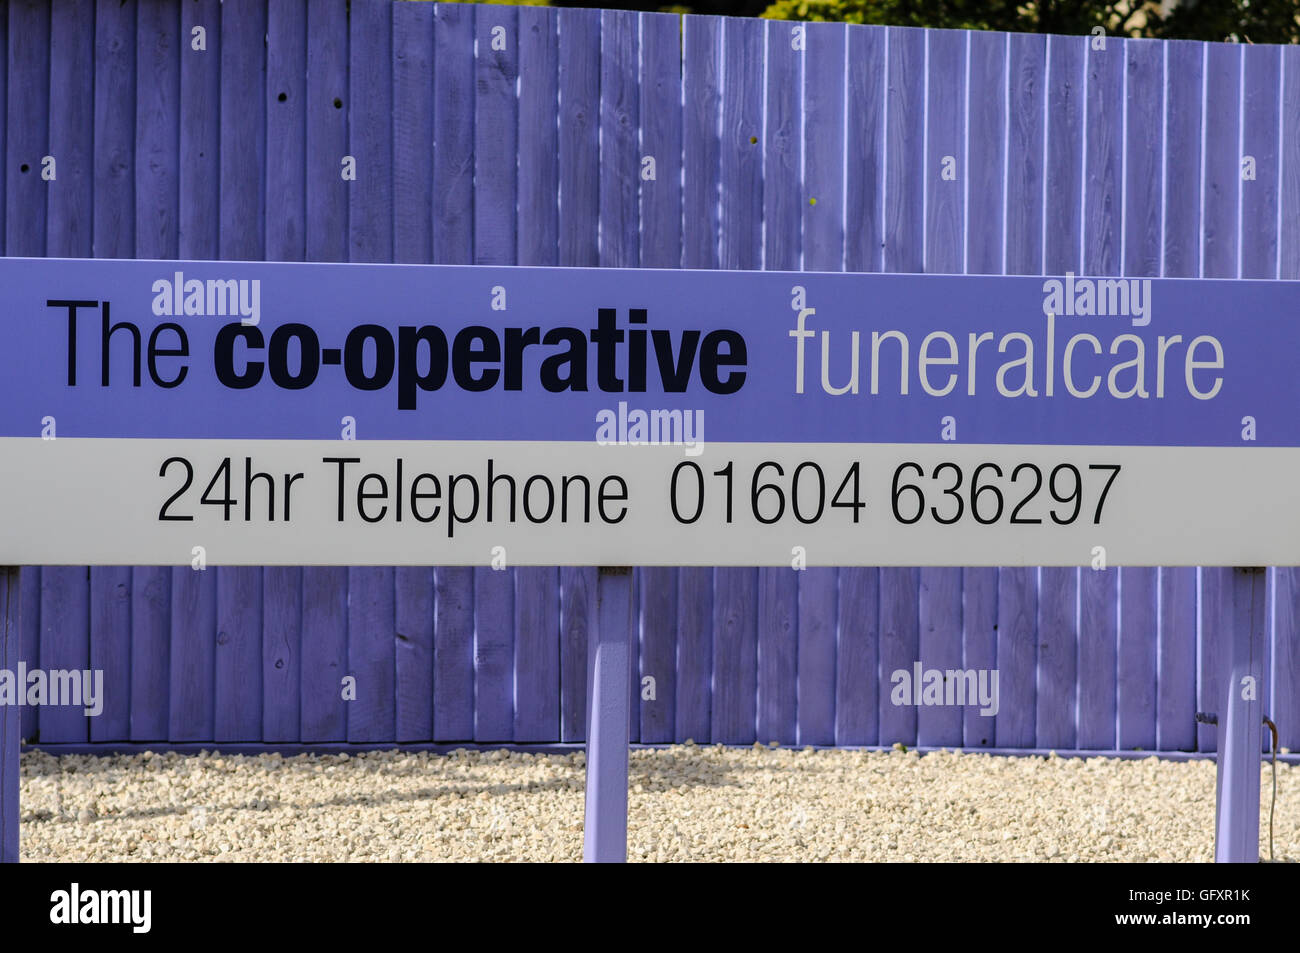 The Co-operative Funeral Care - Stock Image